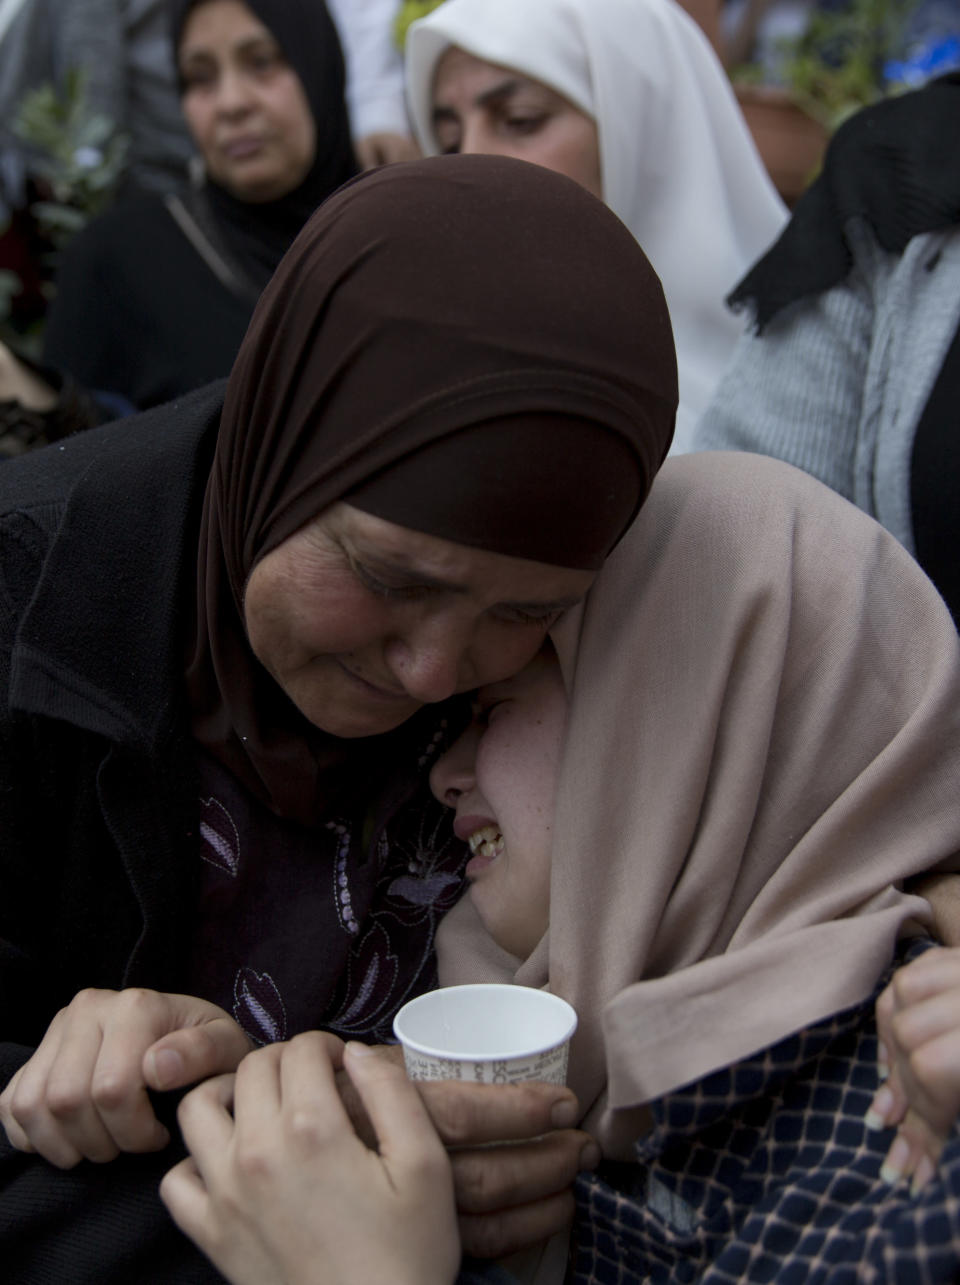 FILE - In this March 21, 2019 file photo, relatives of Palestinian Ahmad Manasra mourn during his funeral in the West Bank village of Wad Fokin, near Bethlehem. In August 2020, Israeli military prosecutors offered three months of community service to a soldier who shot and killed Manasra, an unarmed Palestinian man who exited his vehicle to assist a second motorist who had also been shot -- in a case that has drawn renewed attention to a justice system that Palestinians and human rights activists say has created an atmosphere of impunity. The deal is now being reviewed by the Israeli Supreme Court. (AP Photo/Nasser Nasser, File)